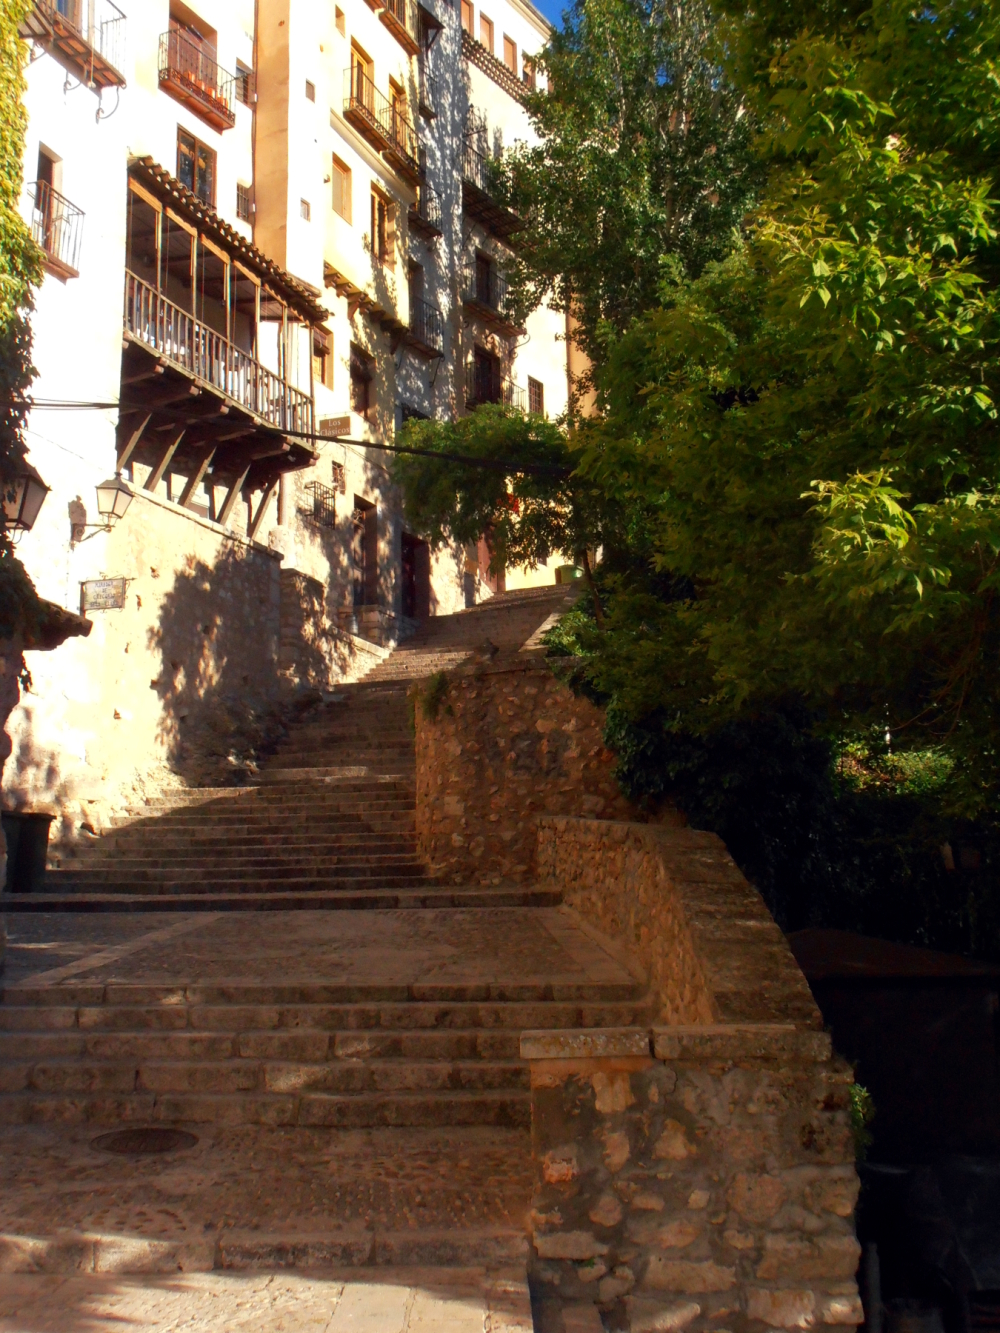 Continue with another type of street in Cuenca